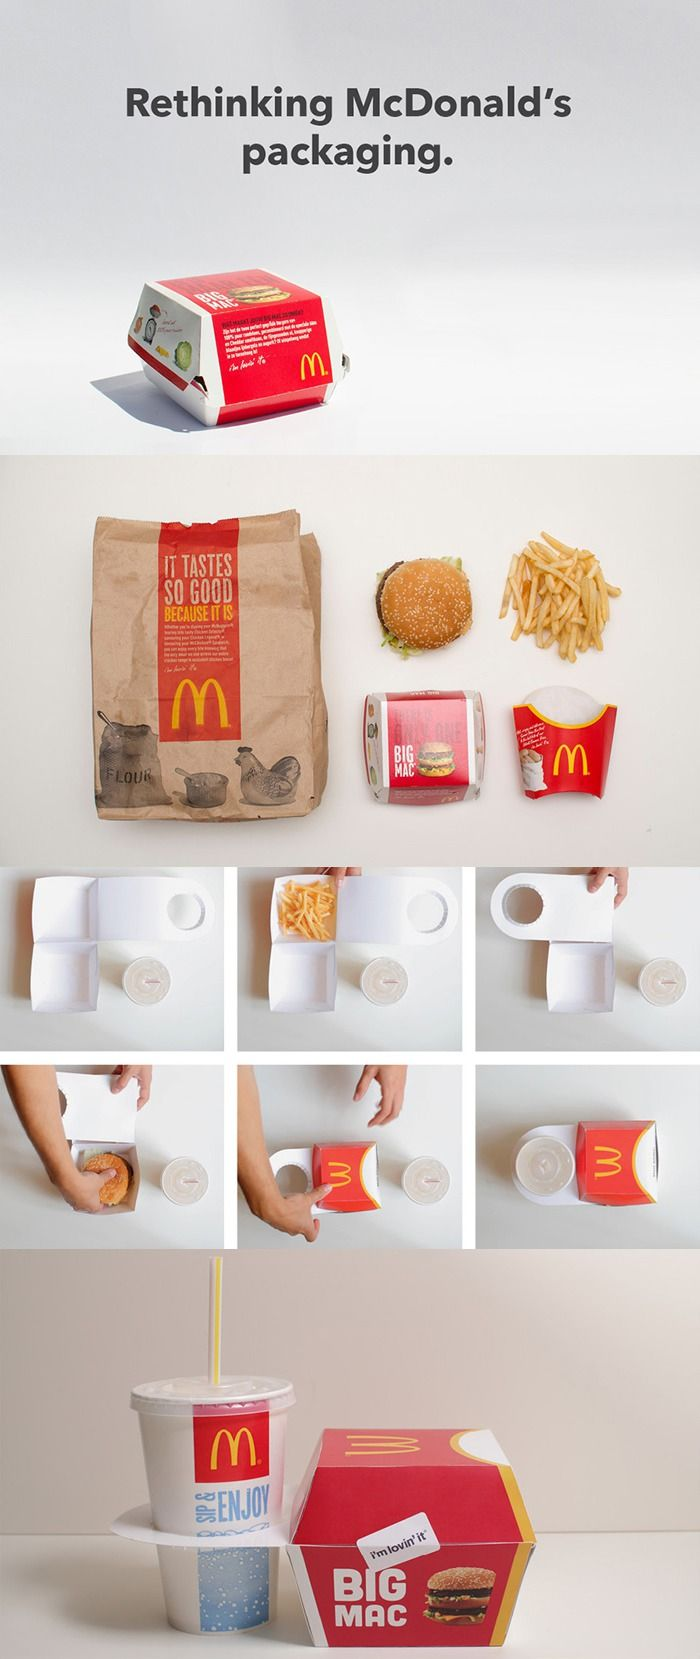 13 best Product Redesign Ideas images on Pinterest | Package ...